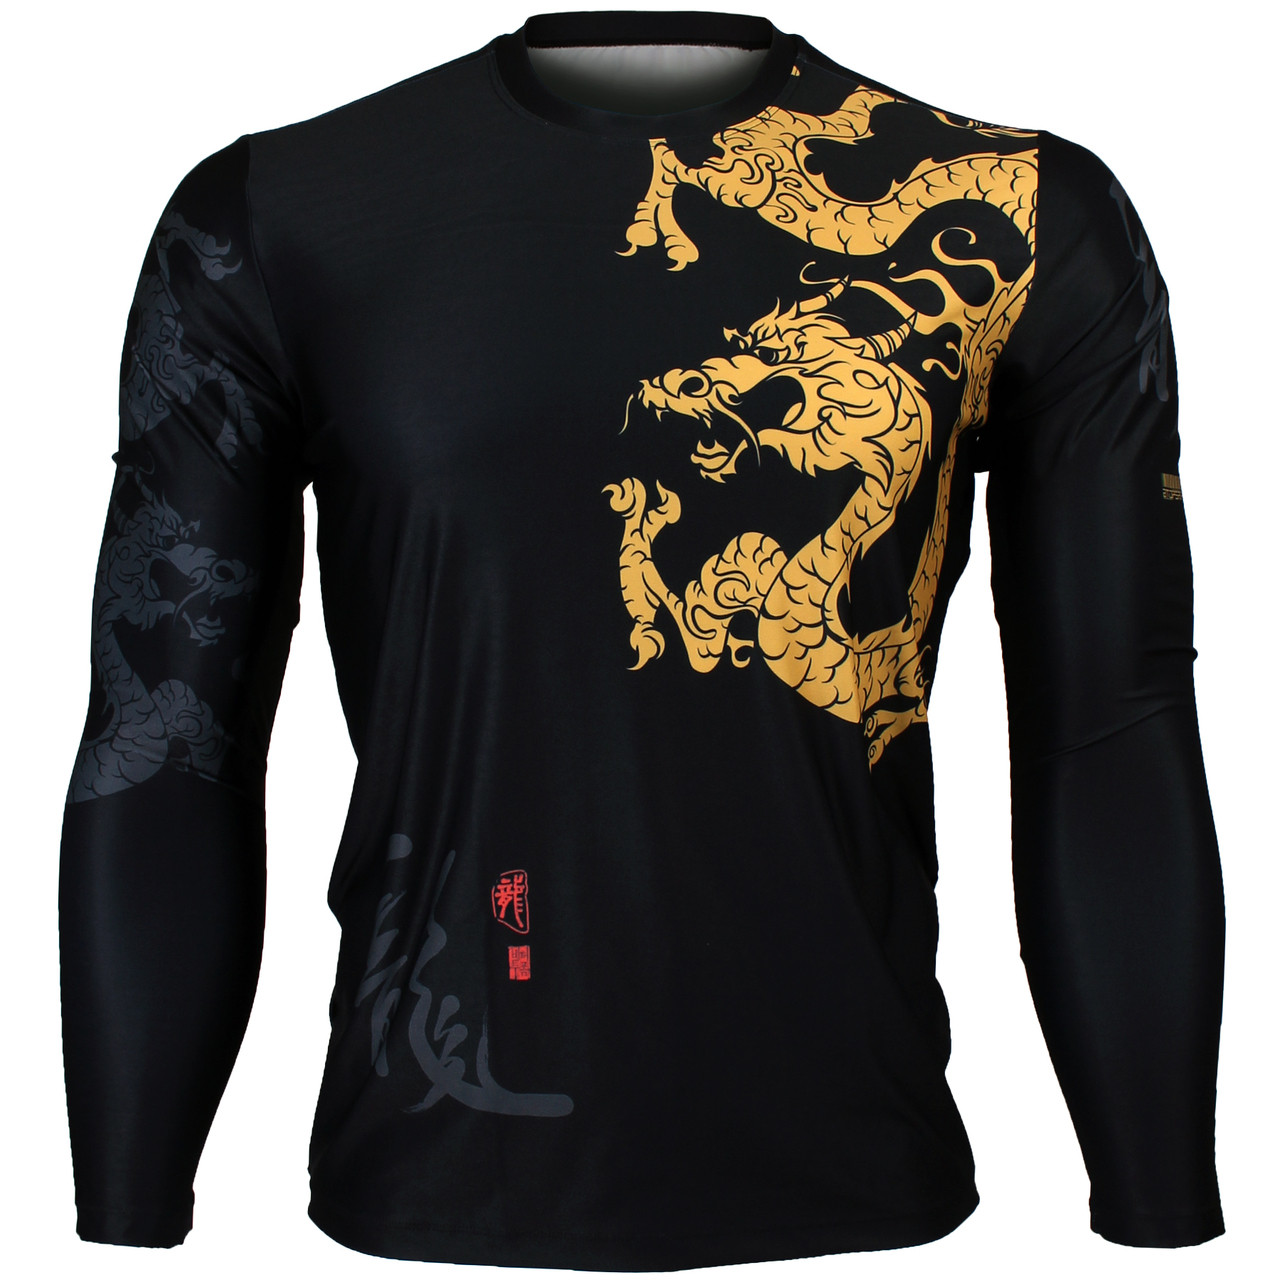 c6481f3c63b1 Shop by Brand. BTOPERFORM · View all Brands · Home · Shop by Design ·  Animal · GOLDEN DRAGON [FR-164] Full graphic Loose-fit Long sleeve Crew ...